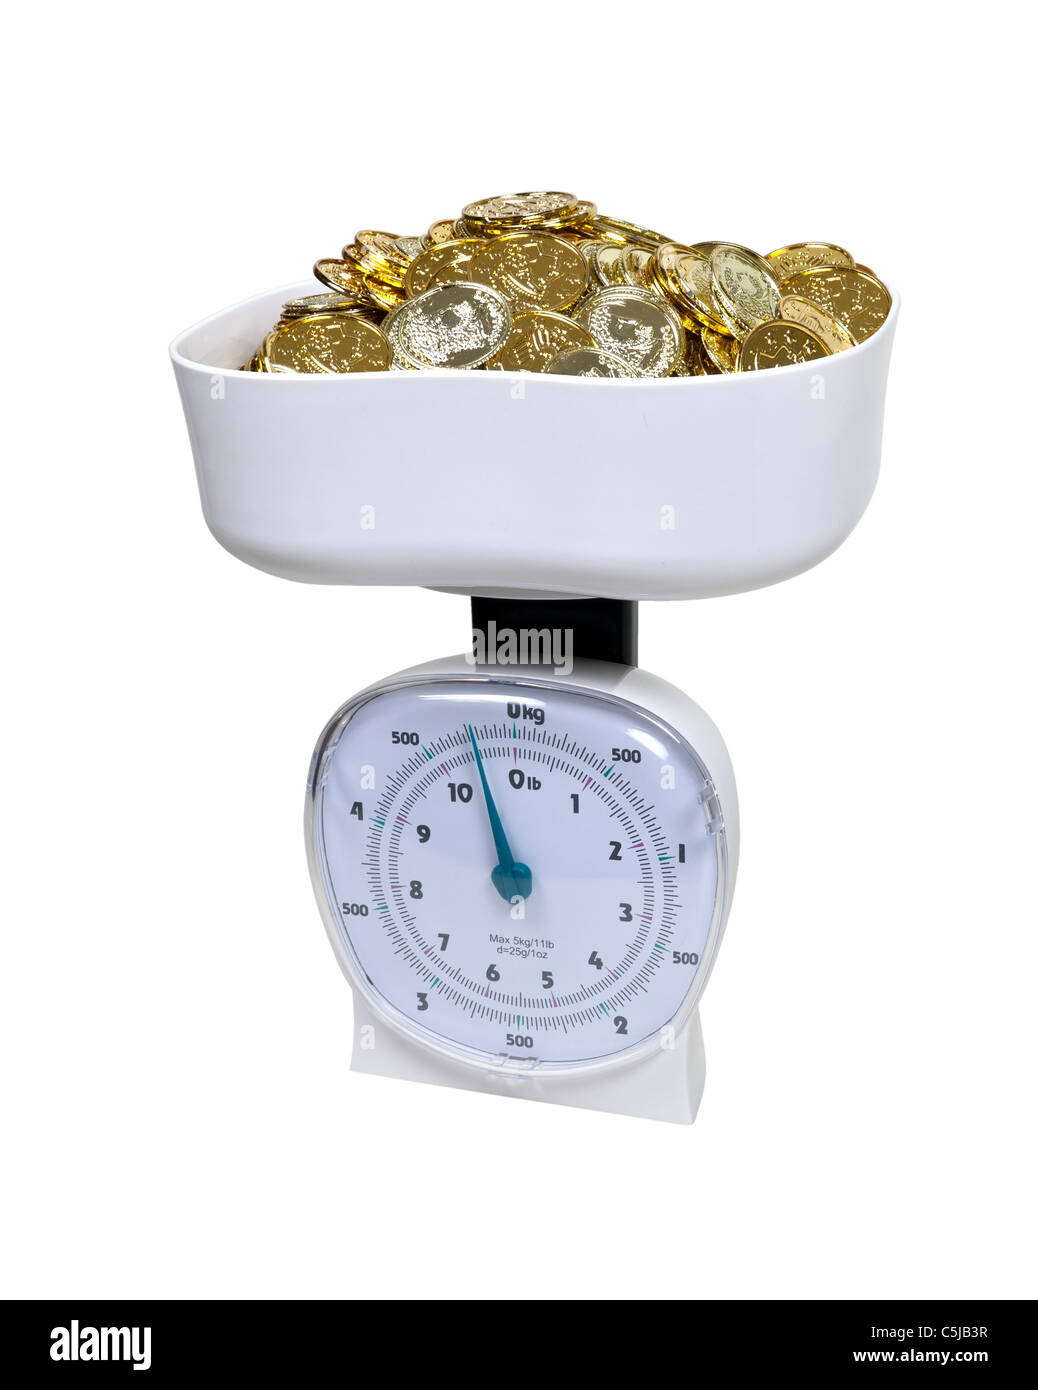 Basket scale used to weigh items full of gold coins - path included - Stock Image